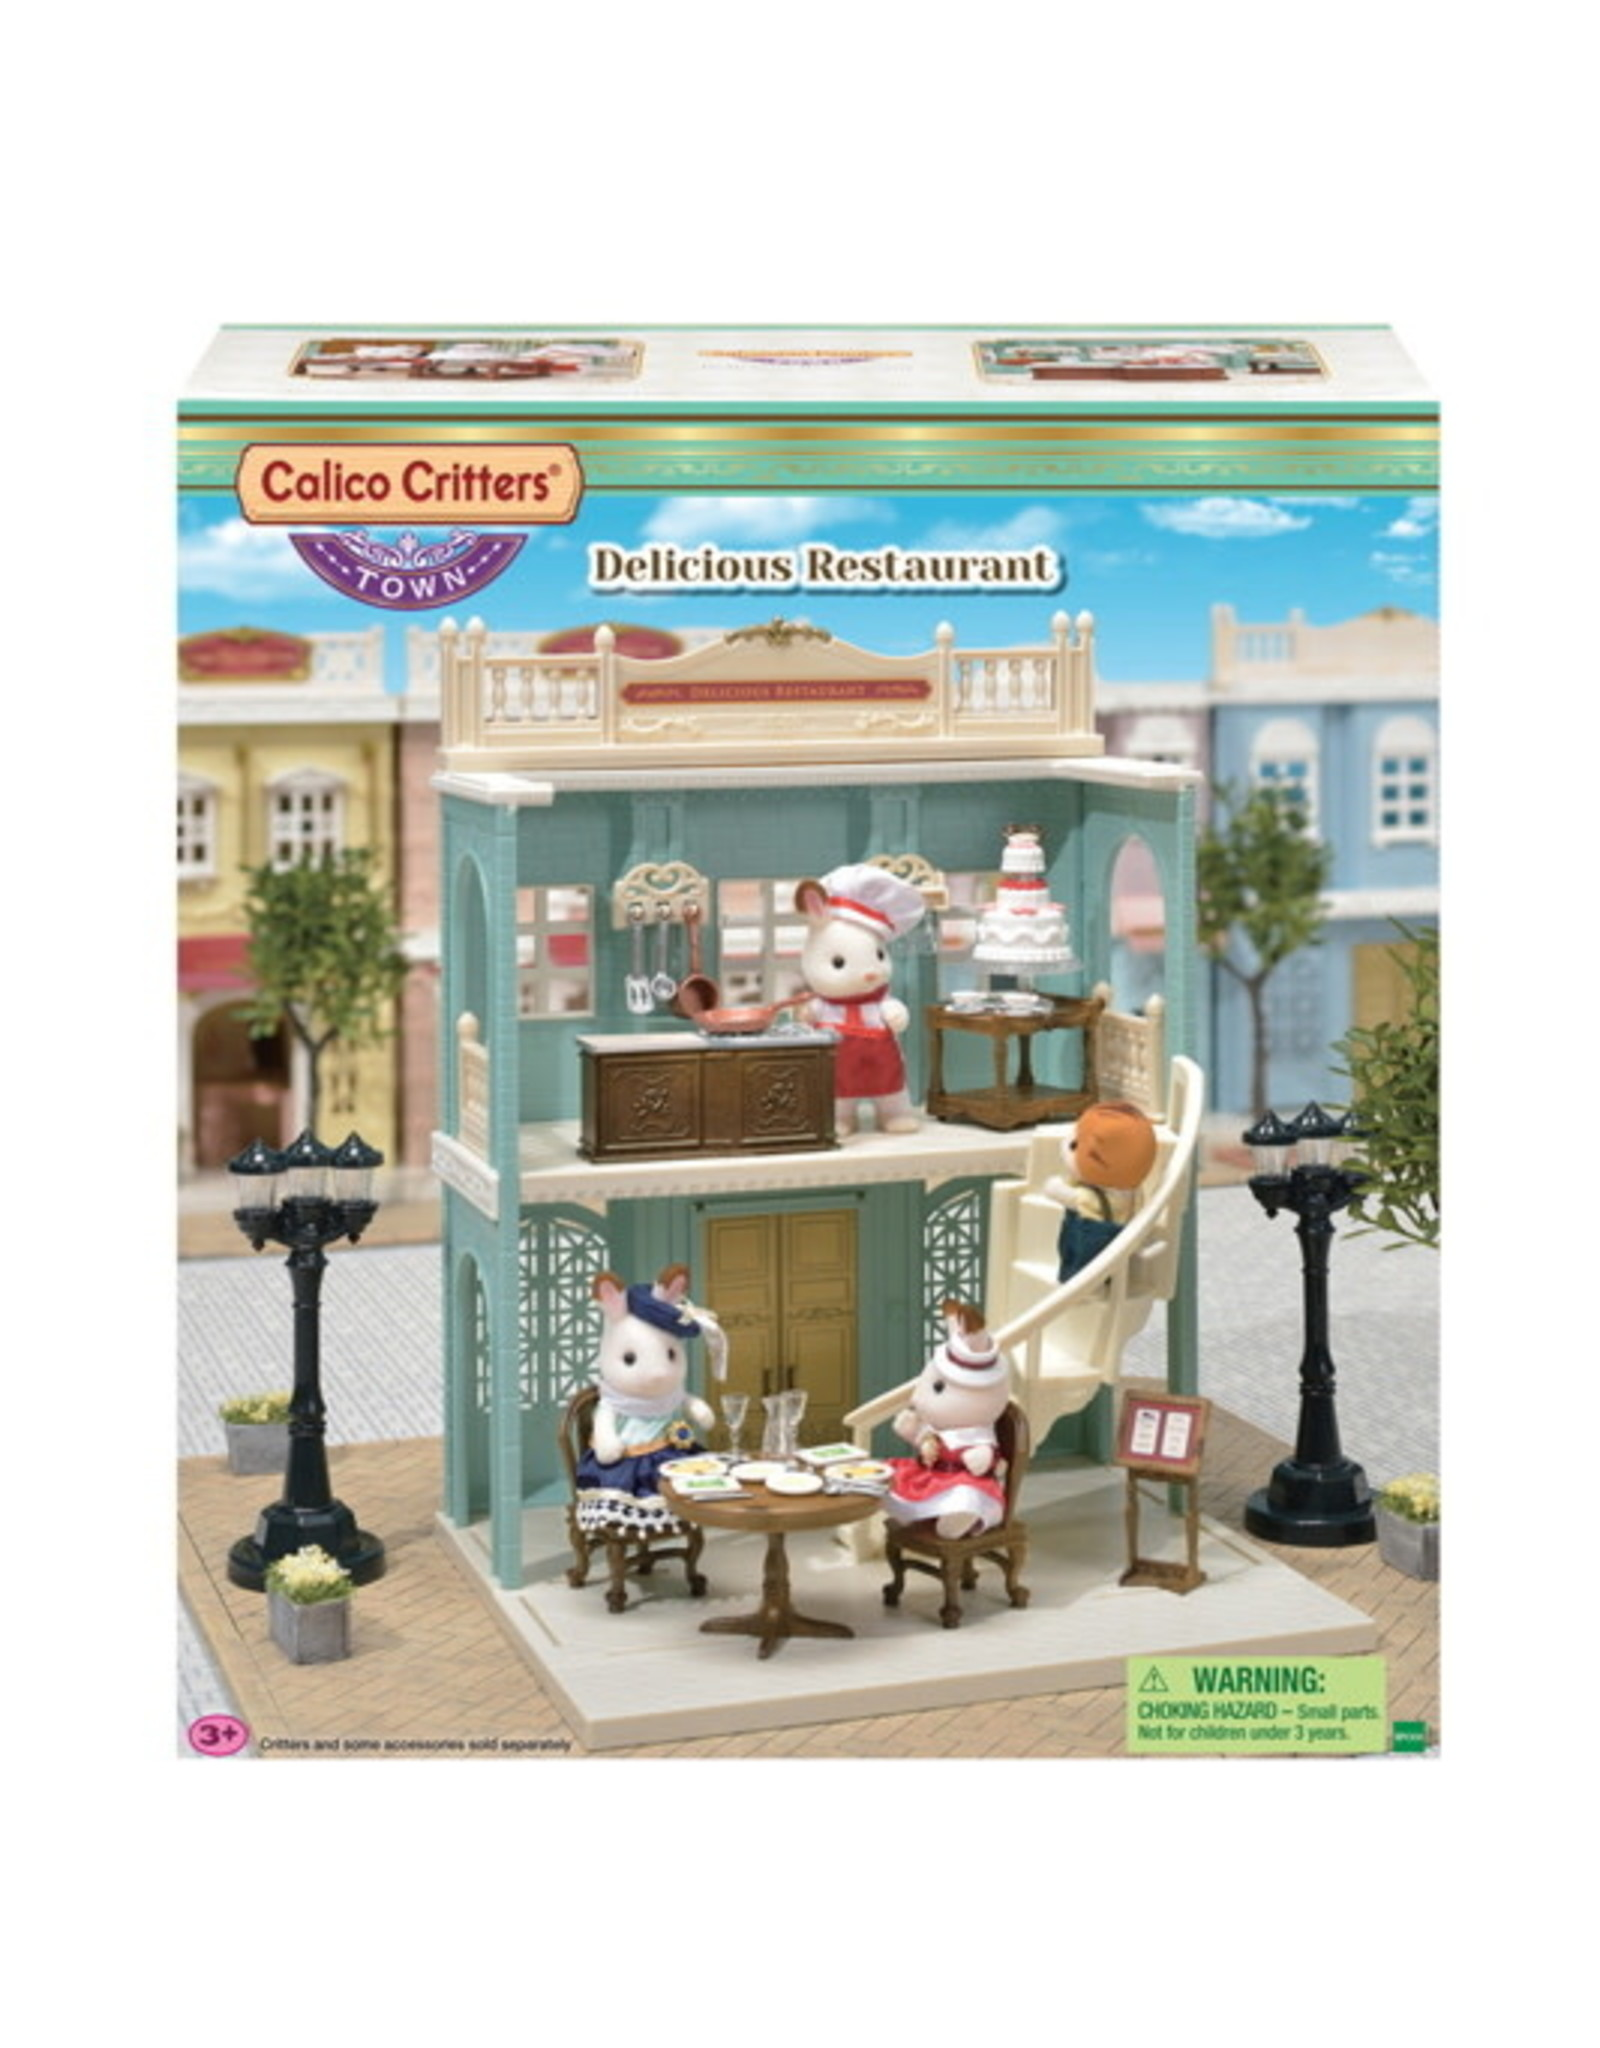 Calico Critters BL Delicious Restaurant Calico Critters